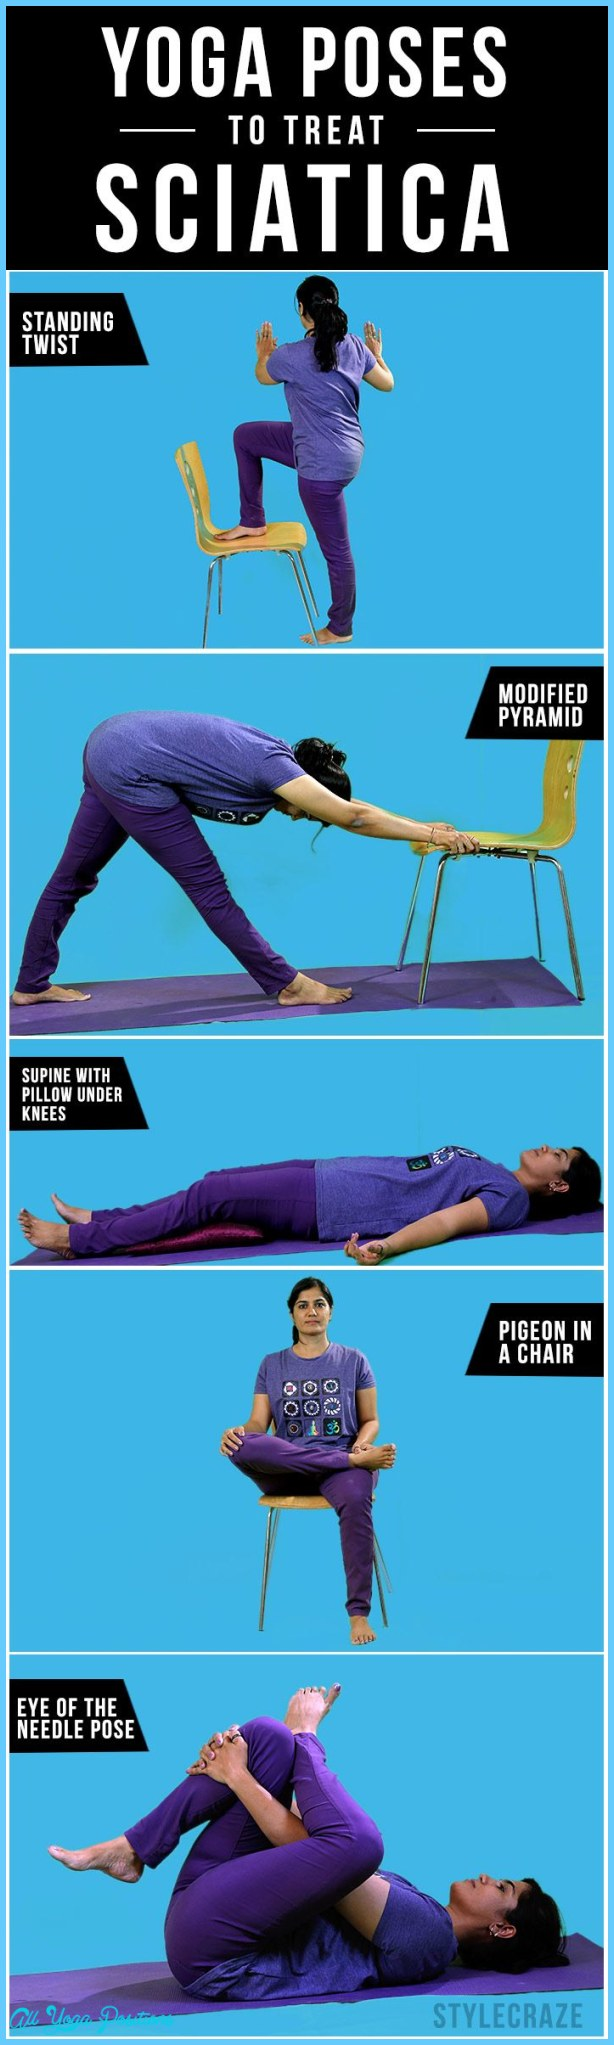 Yoga Poses Not To Do With Sciatica _5.jpg